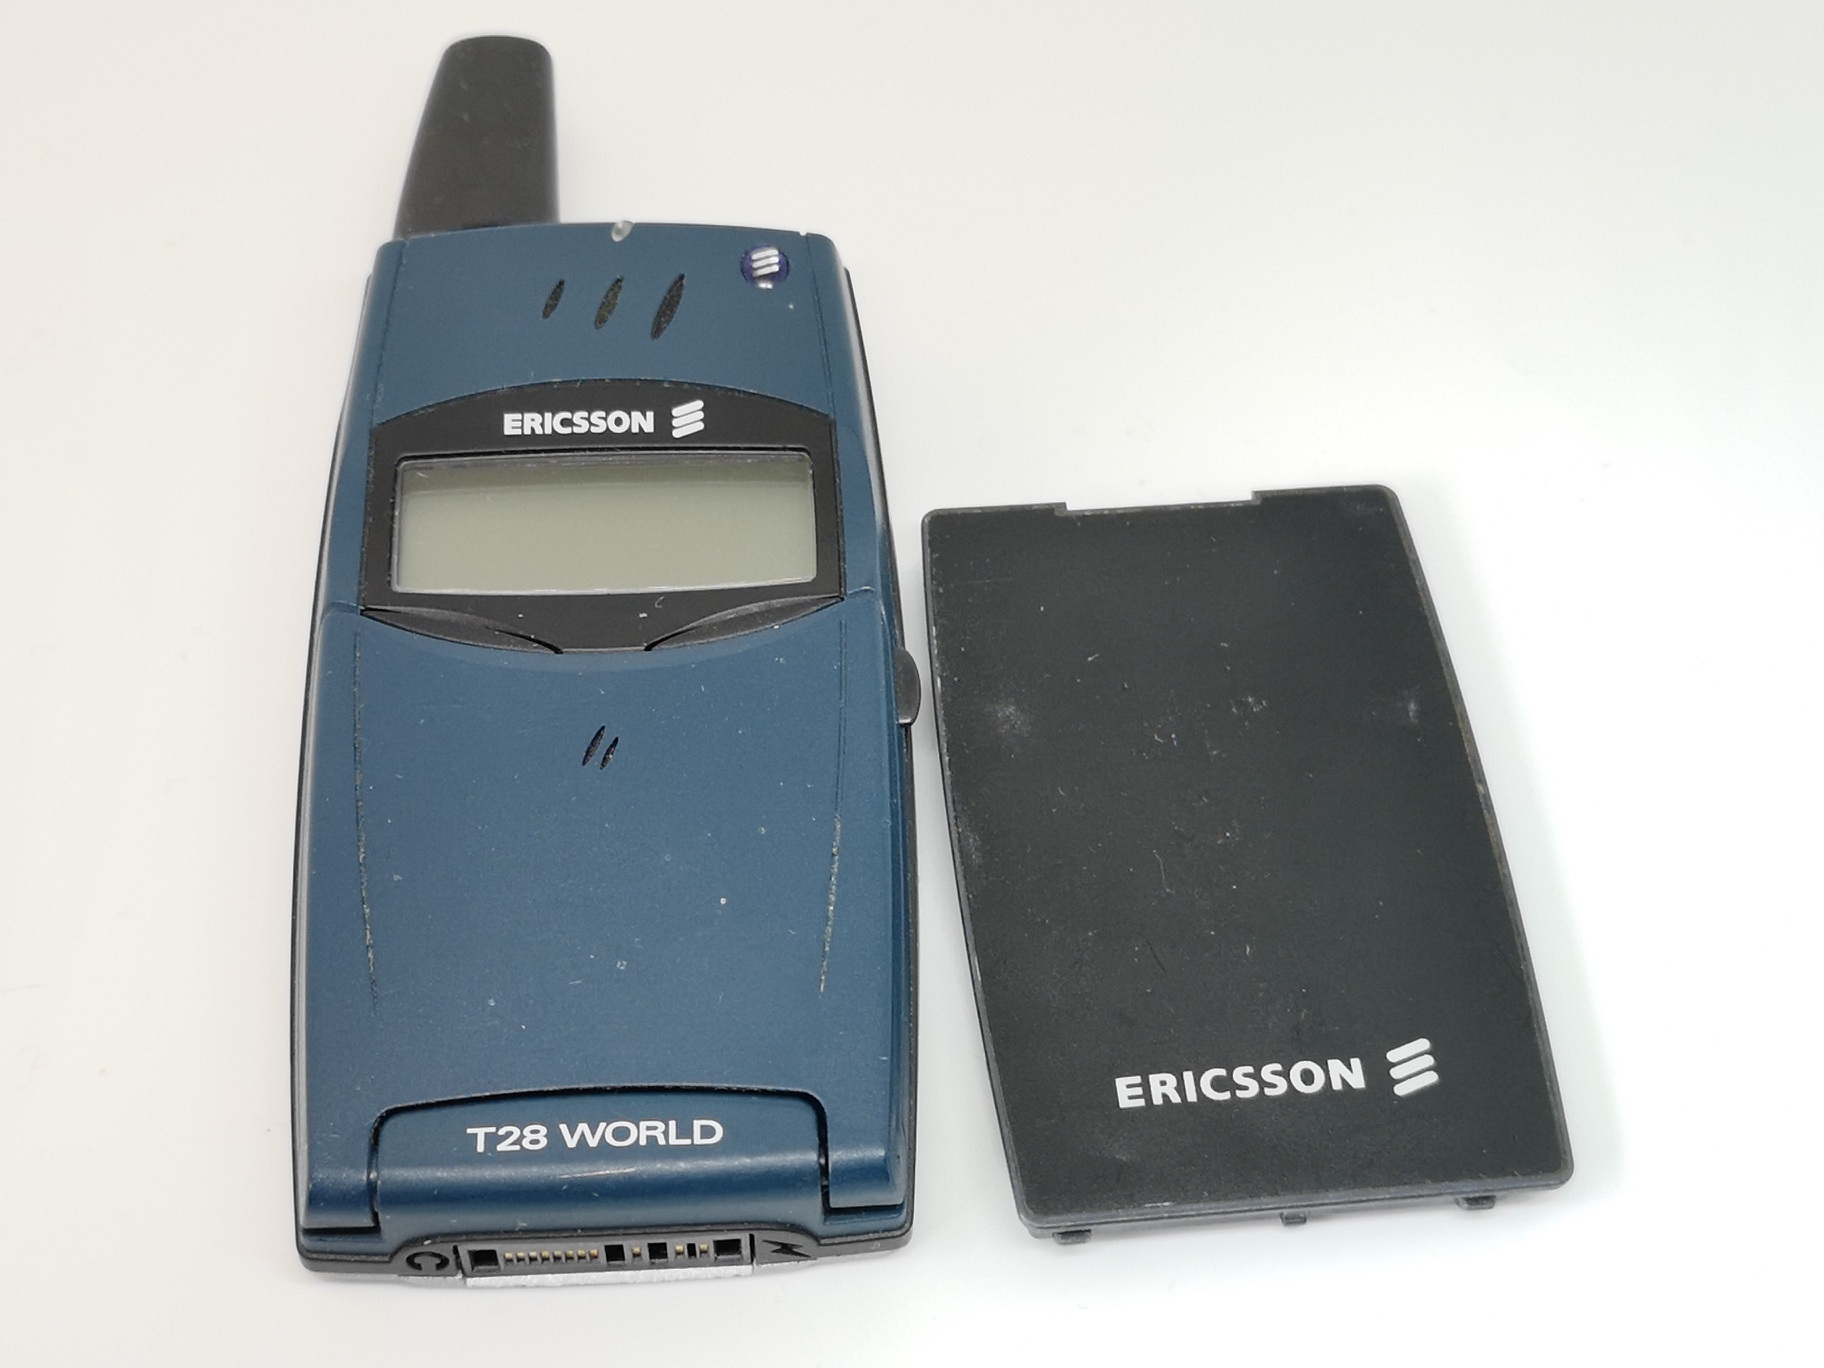 Ericsson T28s Review - Iconic Flip Mobile Phone Handset